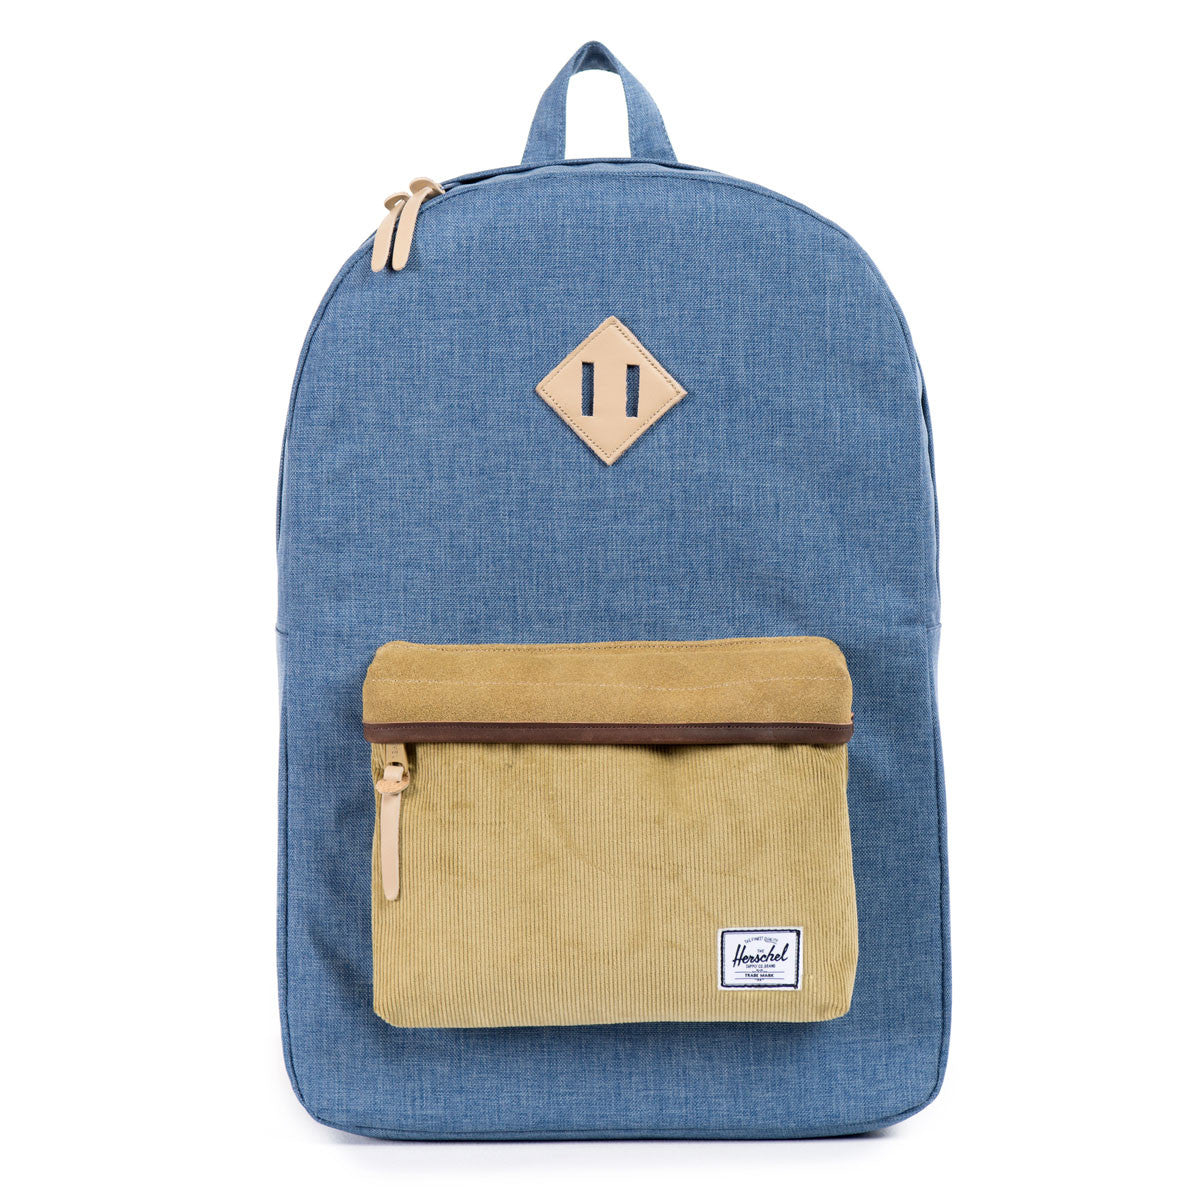 Herschel Supply Co.: Heritage Backpack - Navy / Straw Crosshatch (Ranch) front